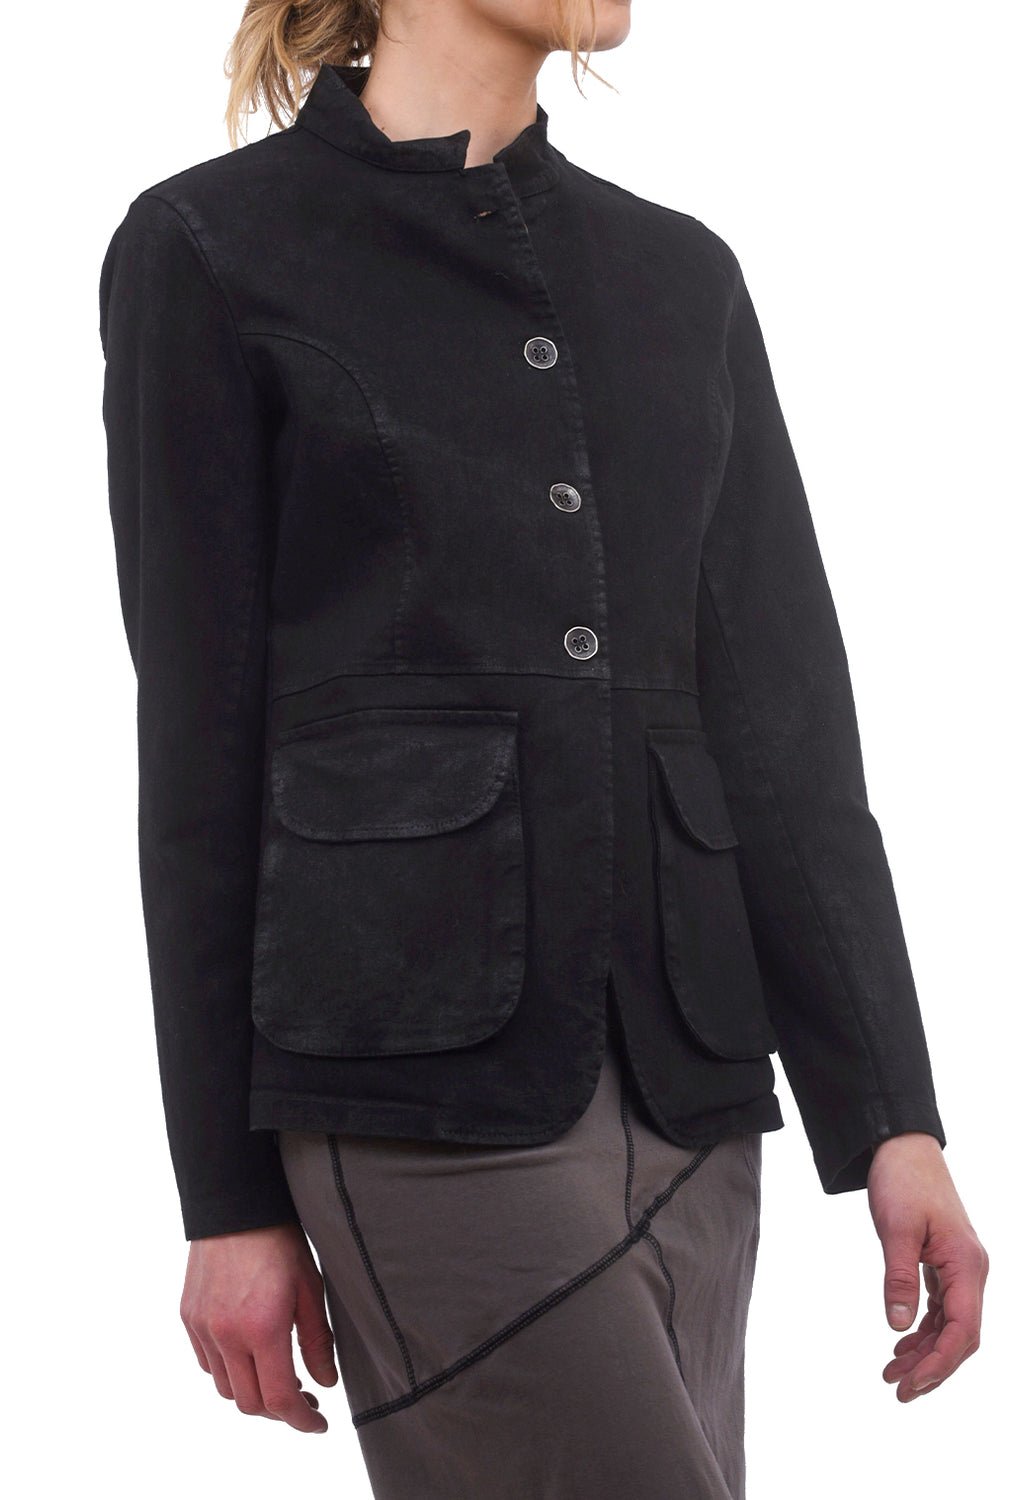 Baci Wax Patchwork Blazer, Black